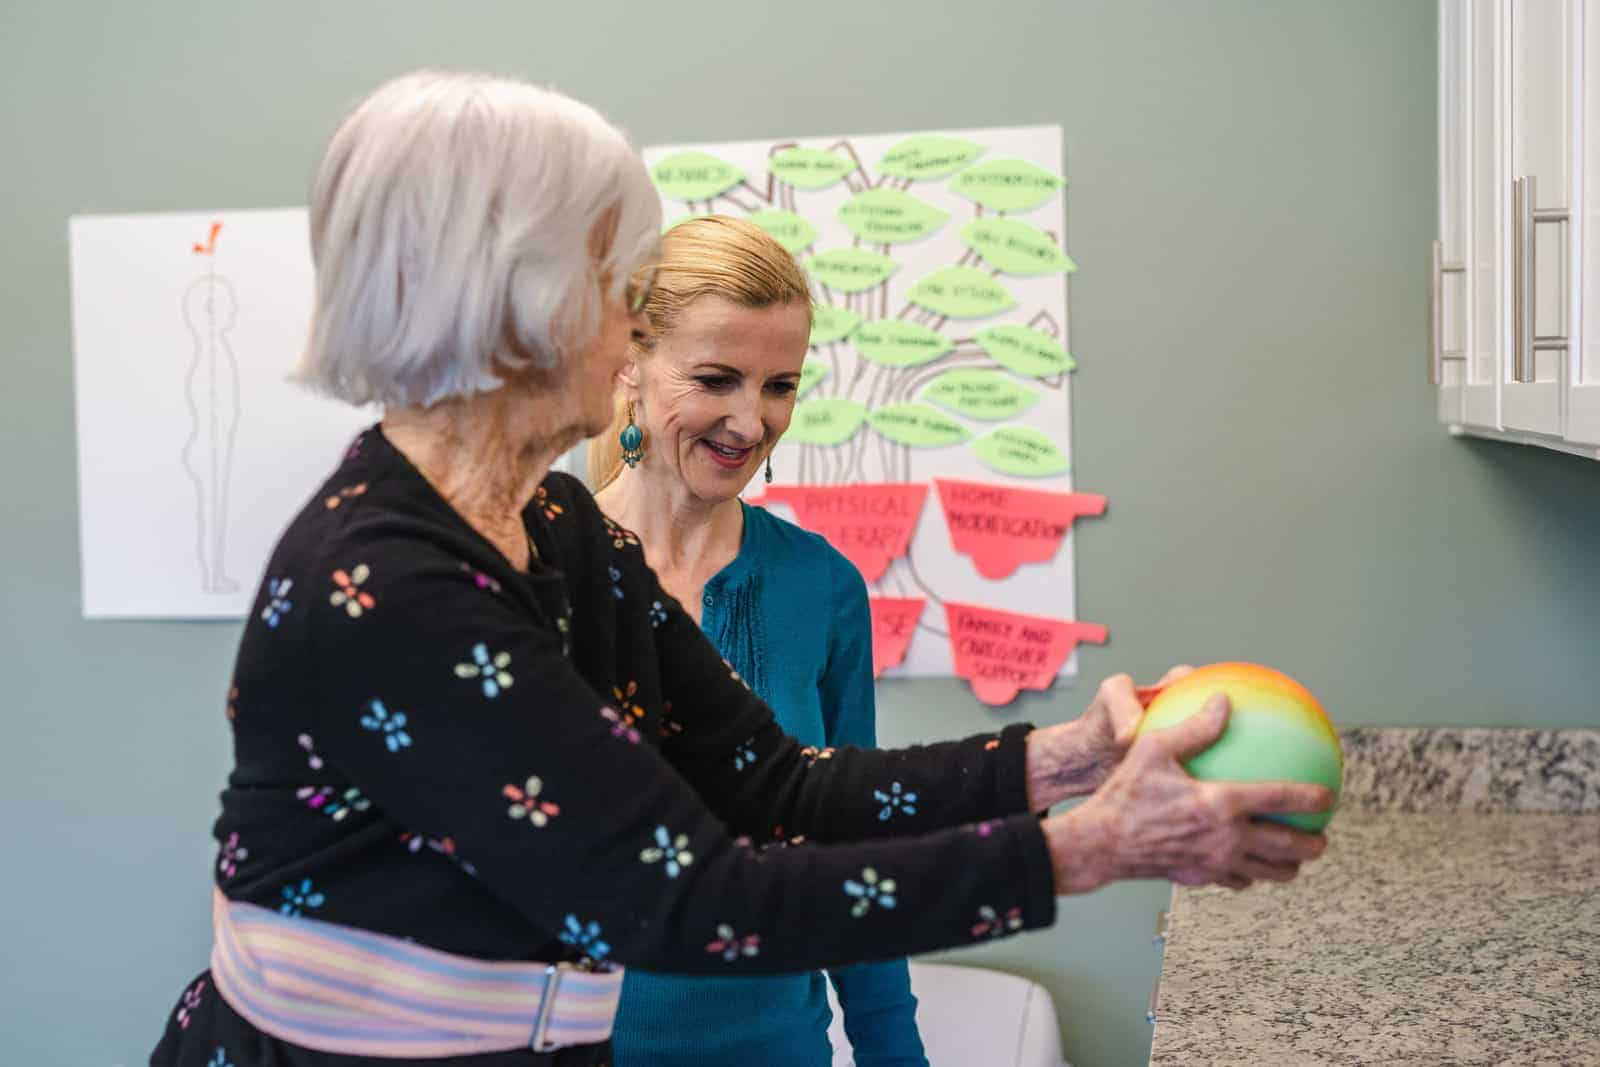 Fall Risk Is Higher For Those With Cognitive Impairment: How To Avoid Falls